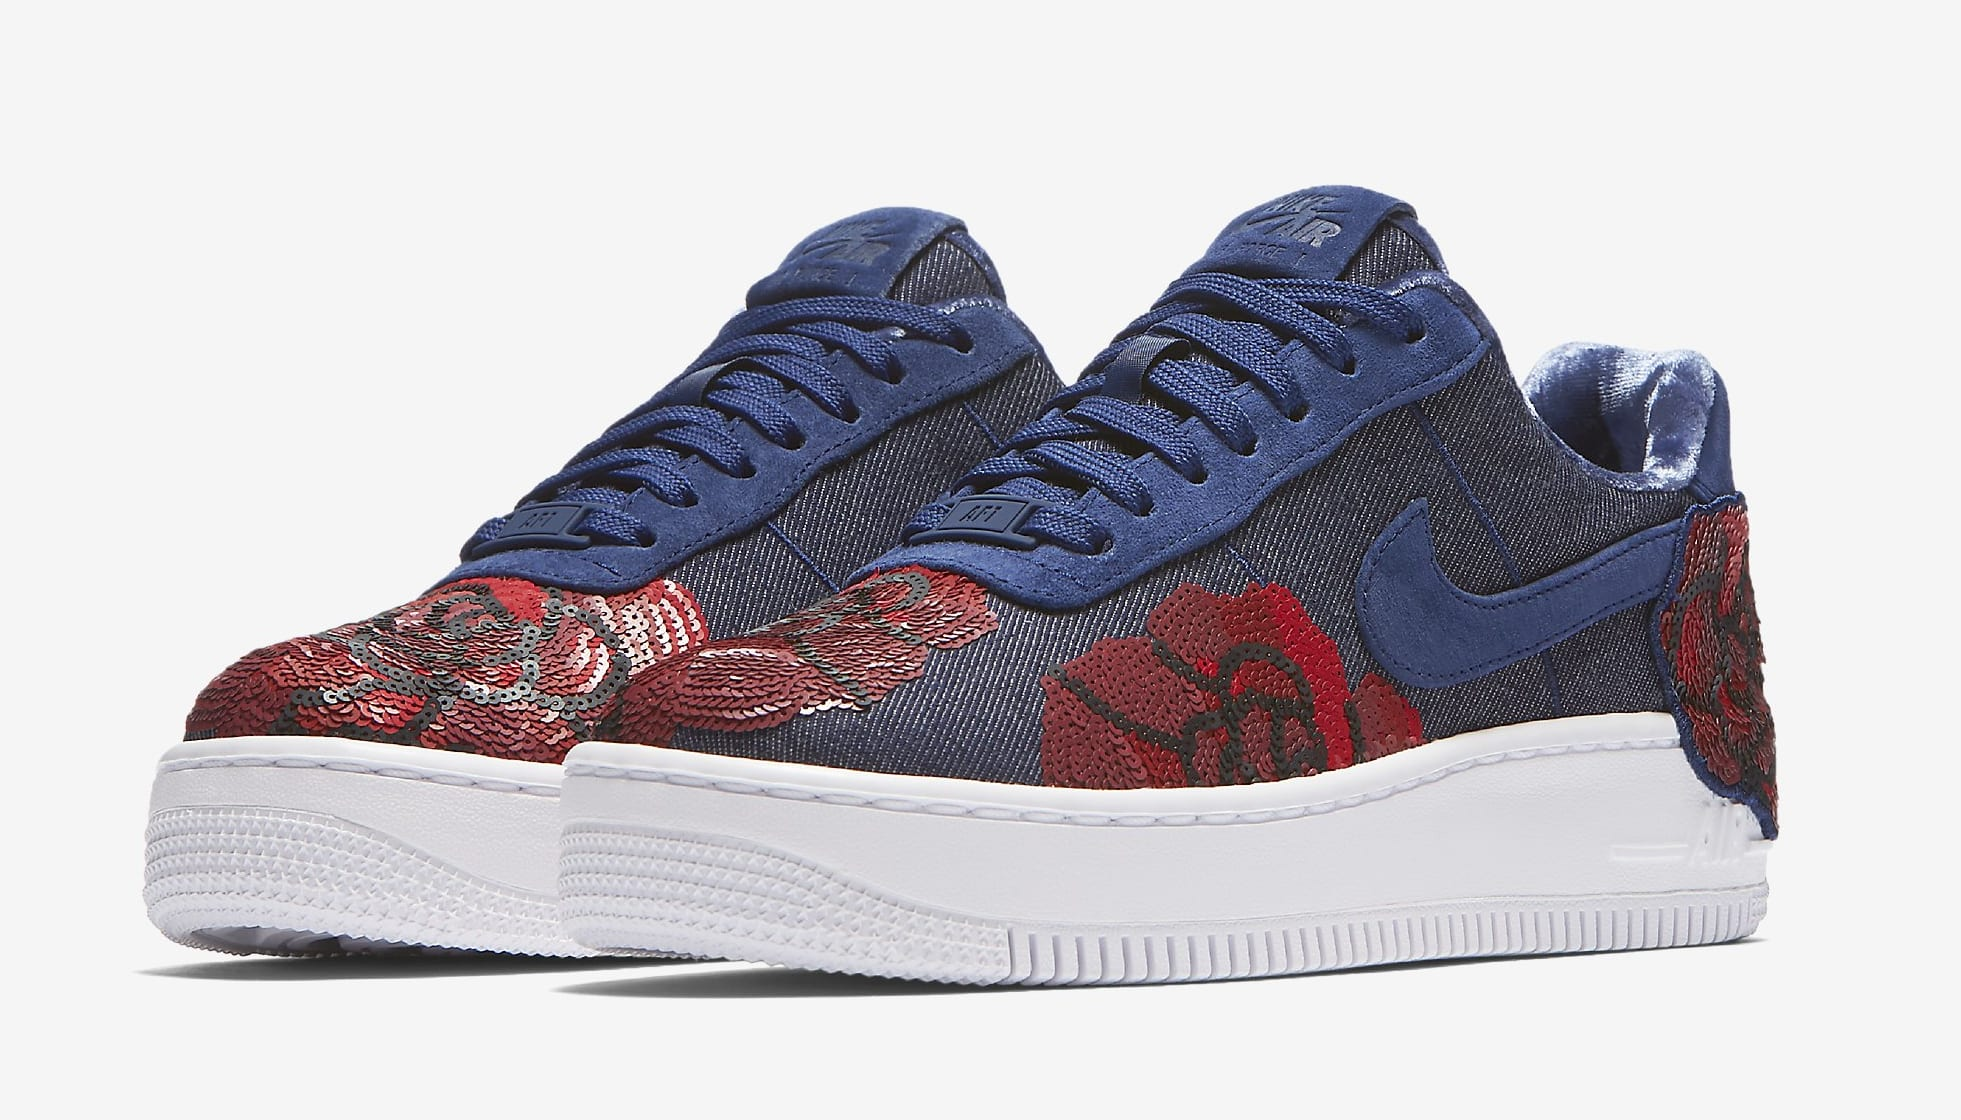 the best attitude b2a9f 37e0b ... Image via Nike Nike Air Force 1 Low Floral Sequin Pack 898421-401 (Pair  ...